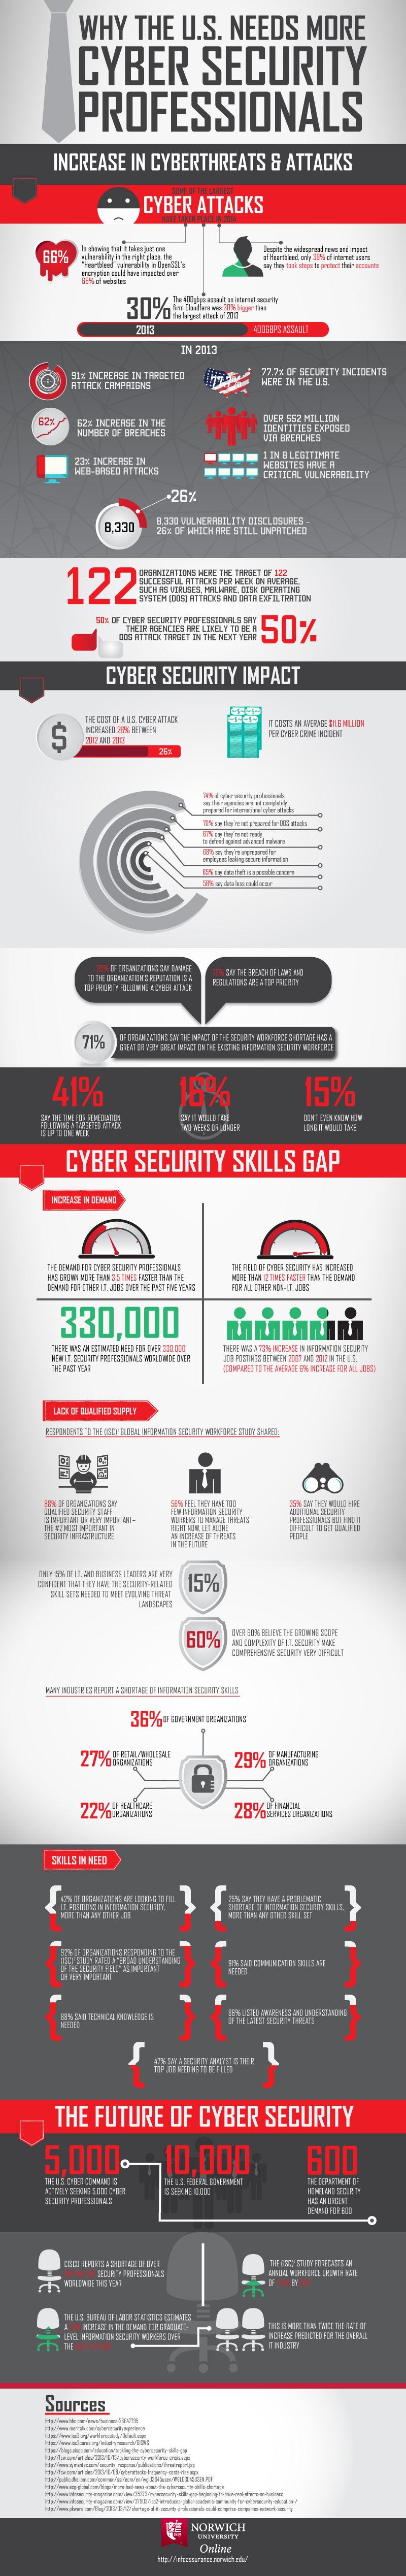 The Need for Cyber Security Professionals